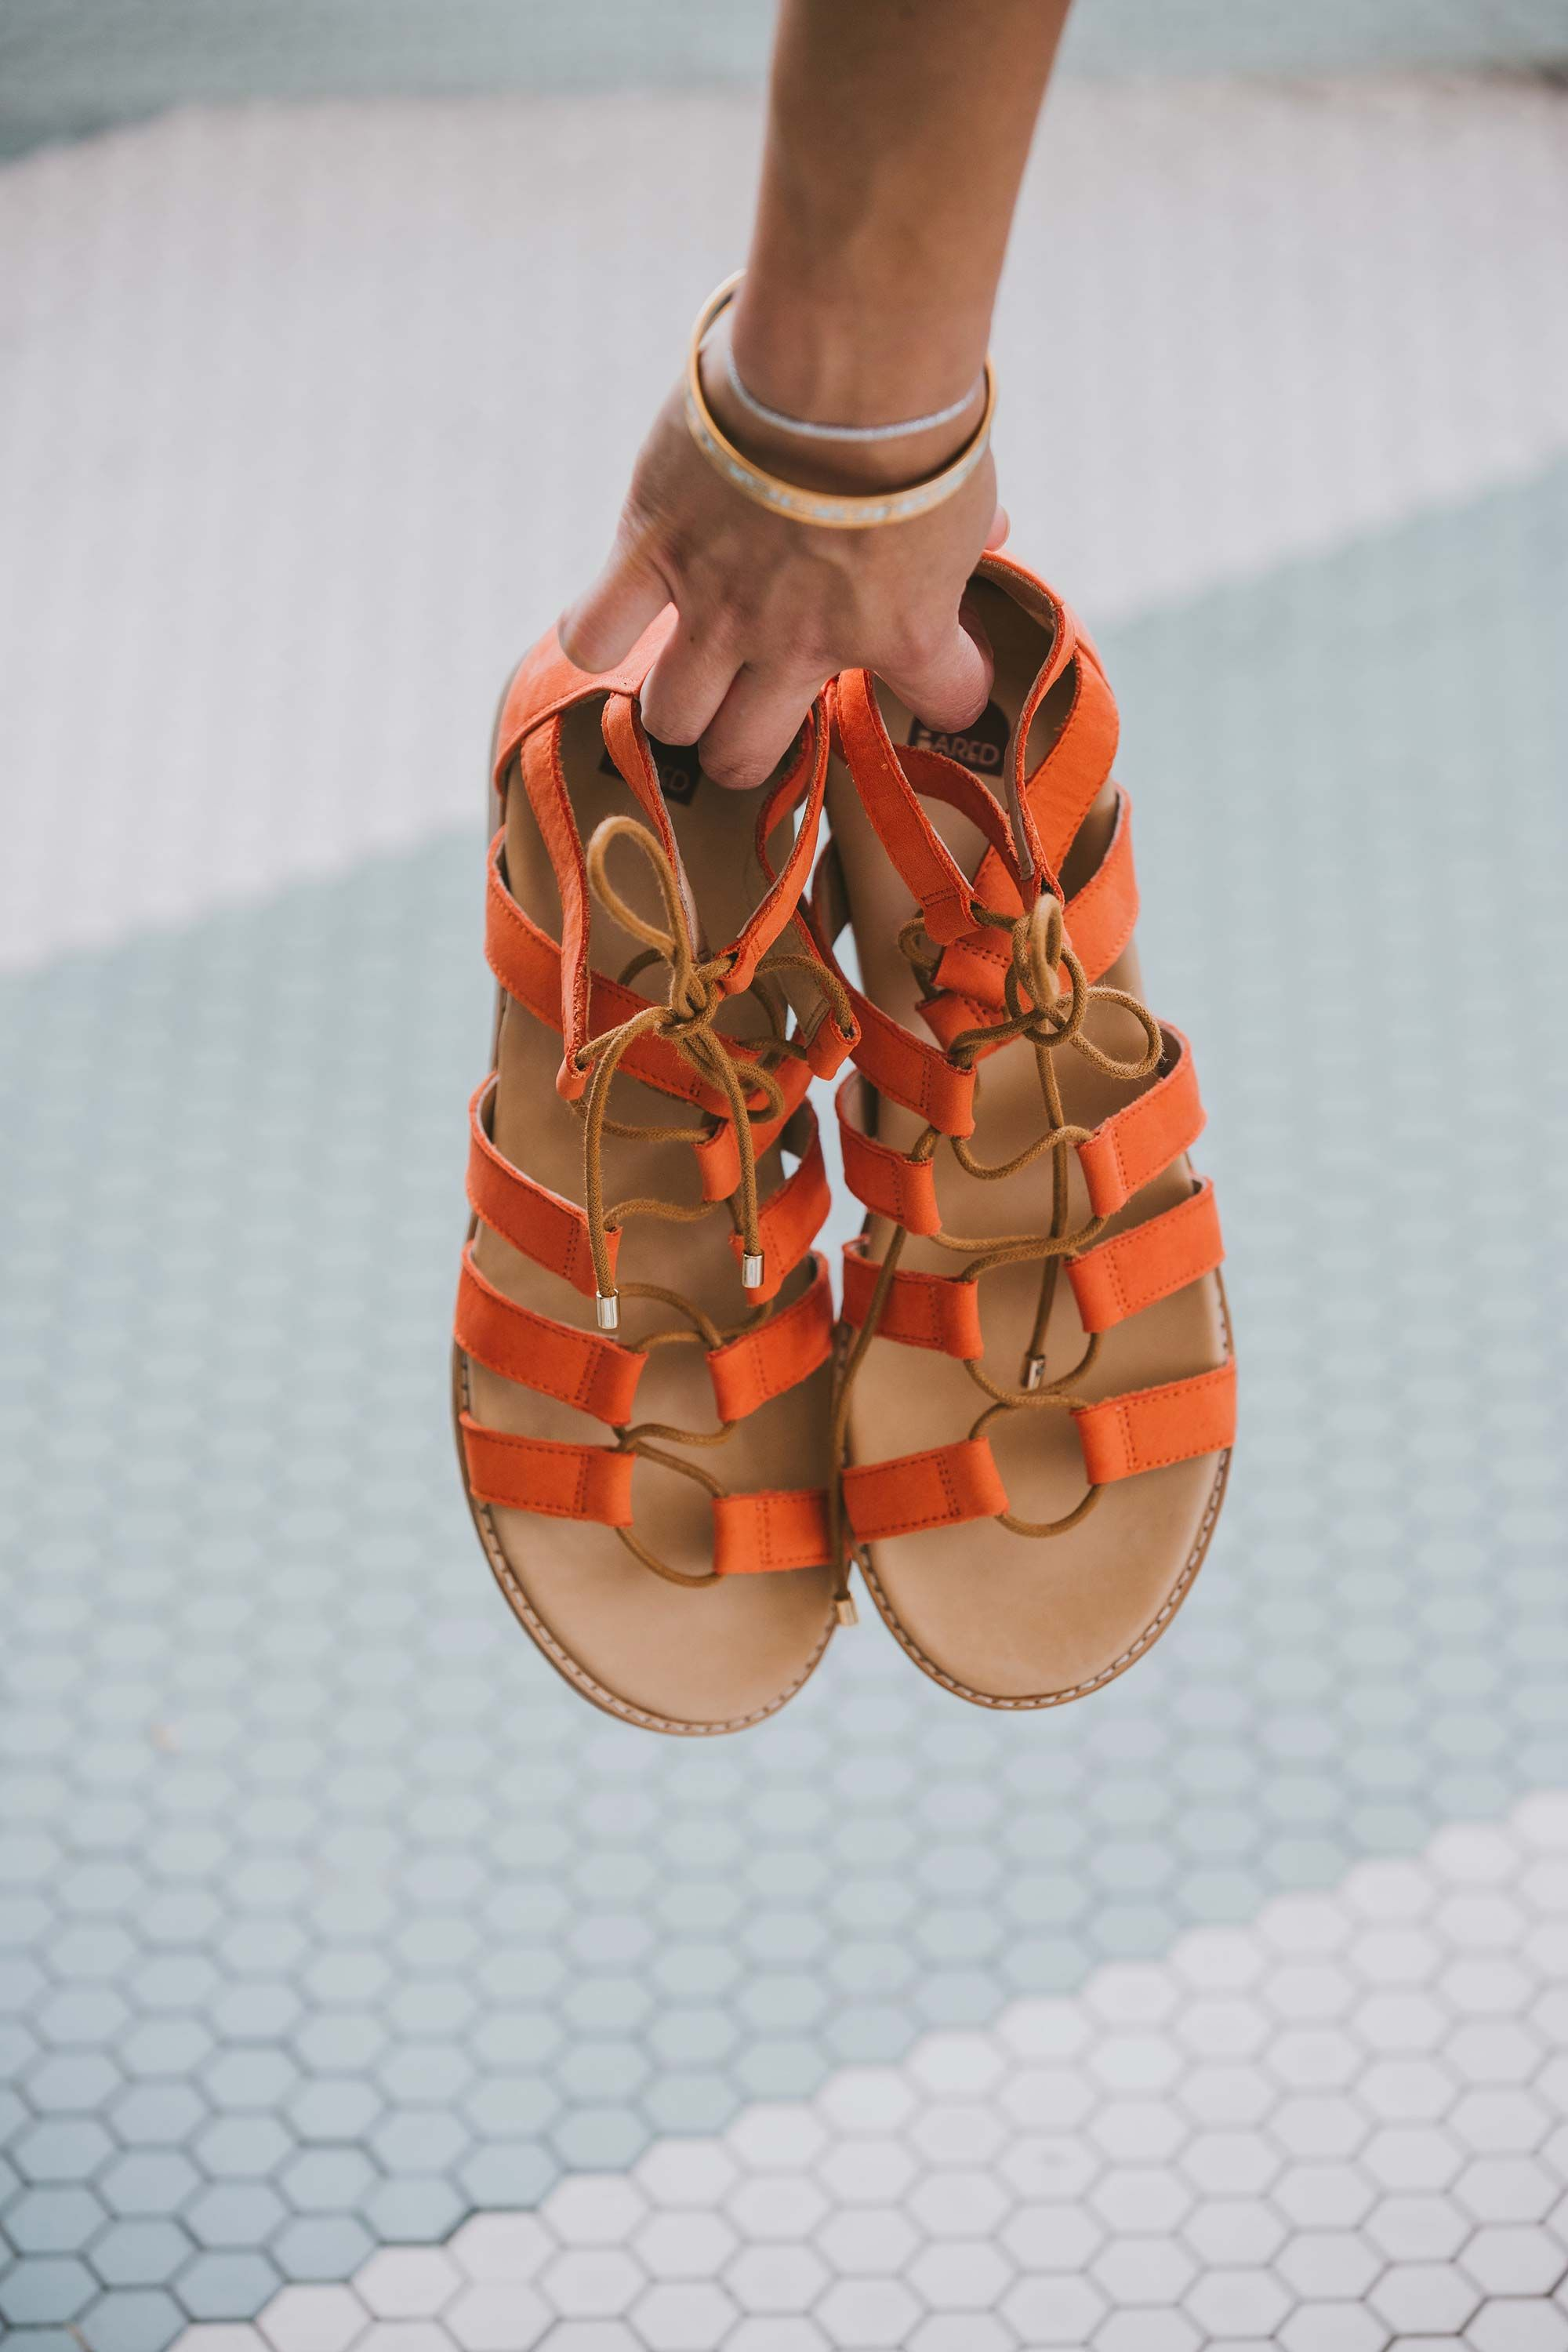 Bared_Footwear_Engagement_Party_With_Lenzo_Womens_Goose_Tangerine_Nubuck_Lace_Up_Sandals